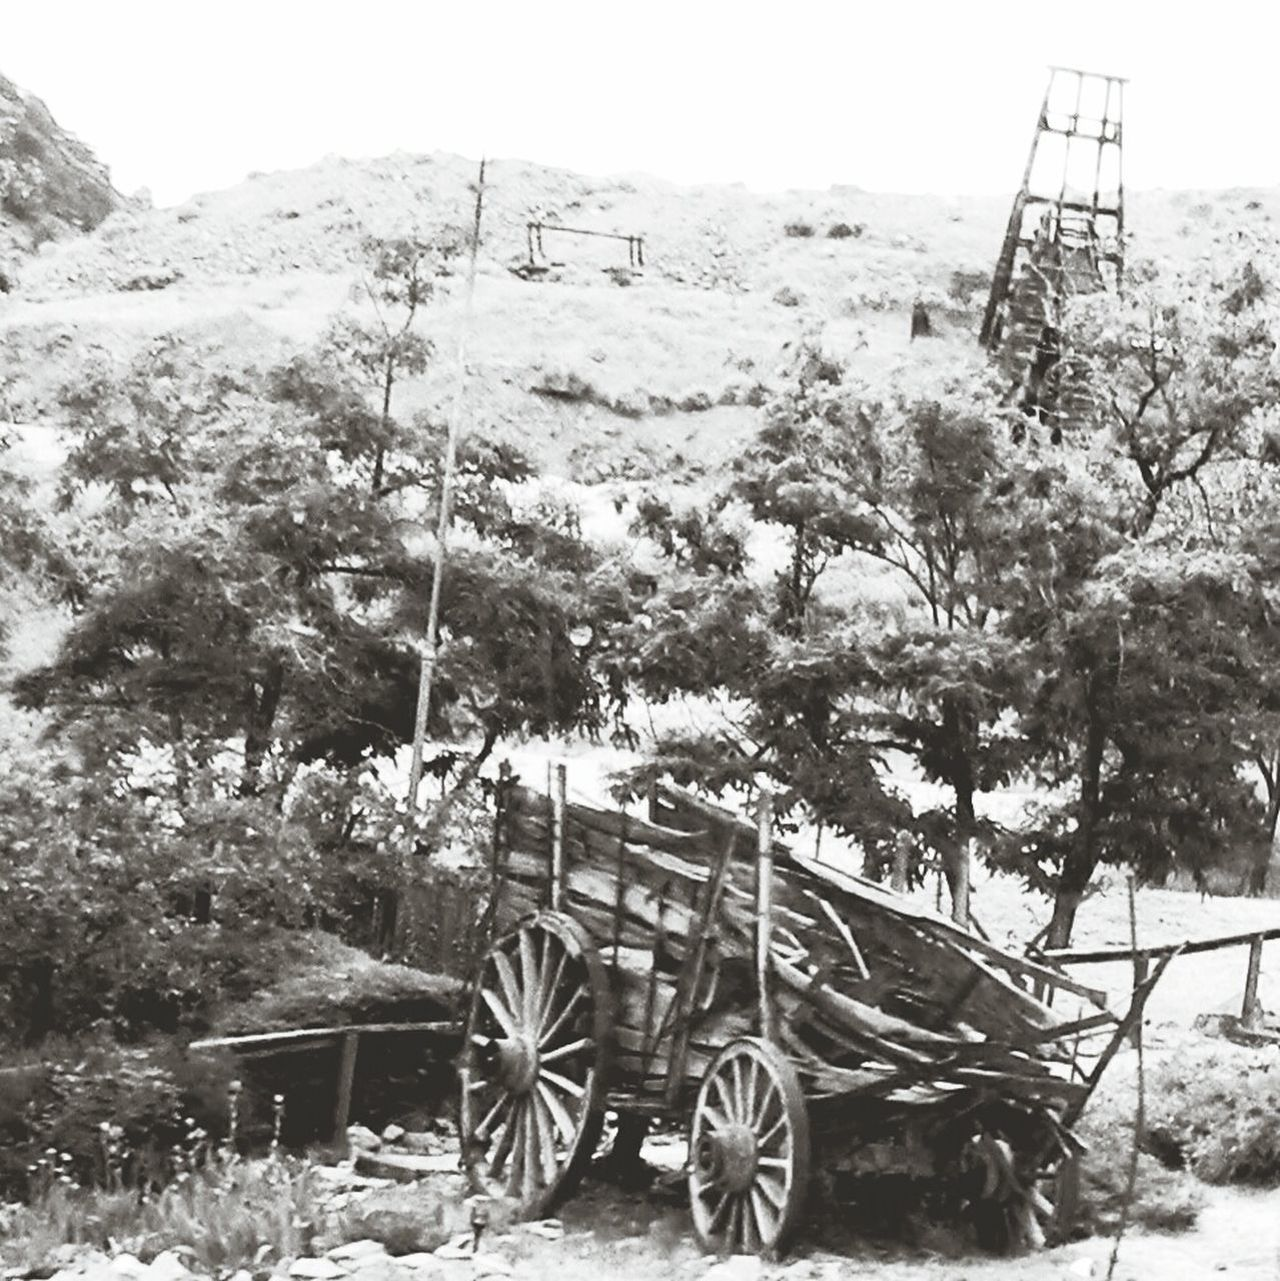 Tree Day Outdoors No People Growth Sky Nature Old Old Buildings Old Town Old Wagon Old Wagons Wooden Wagon Mining History Of America Mining Town Mining Equipment Mining Site Mining For Gold Mining For Silver Mining